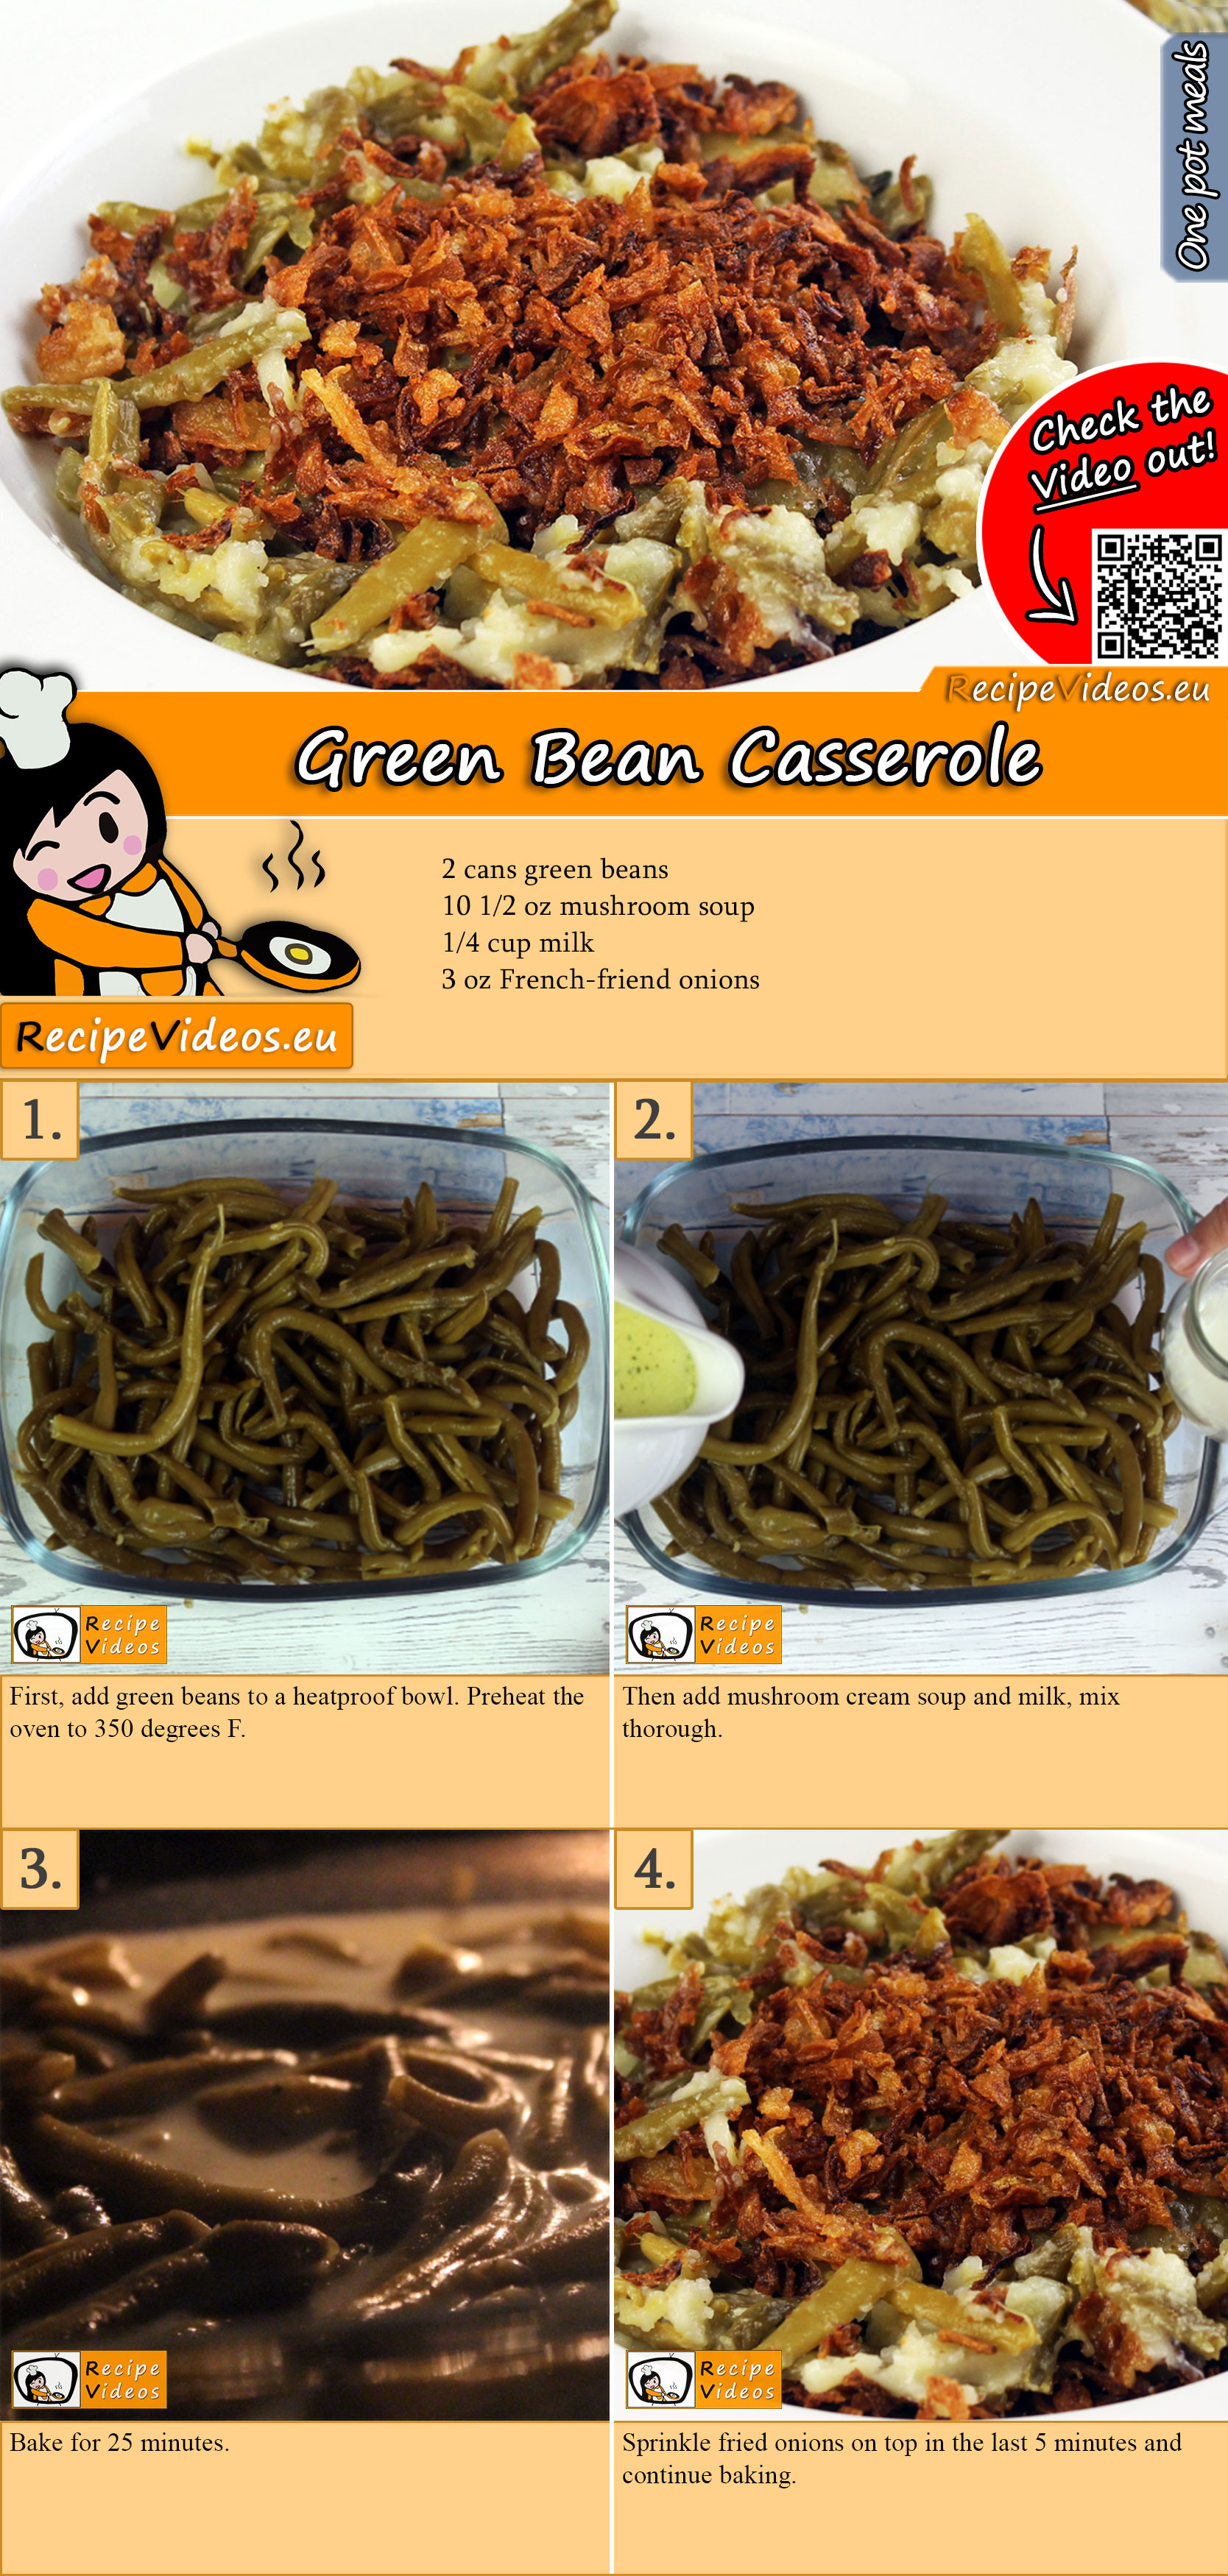 Green Bean Casserole recipe with video